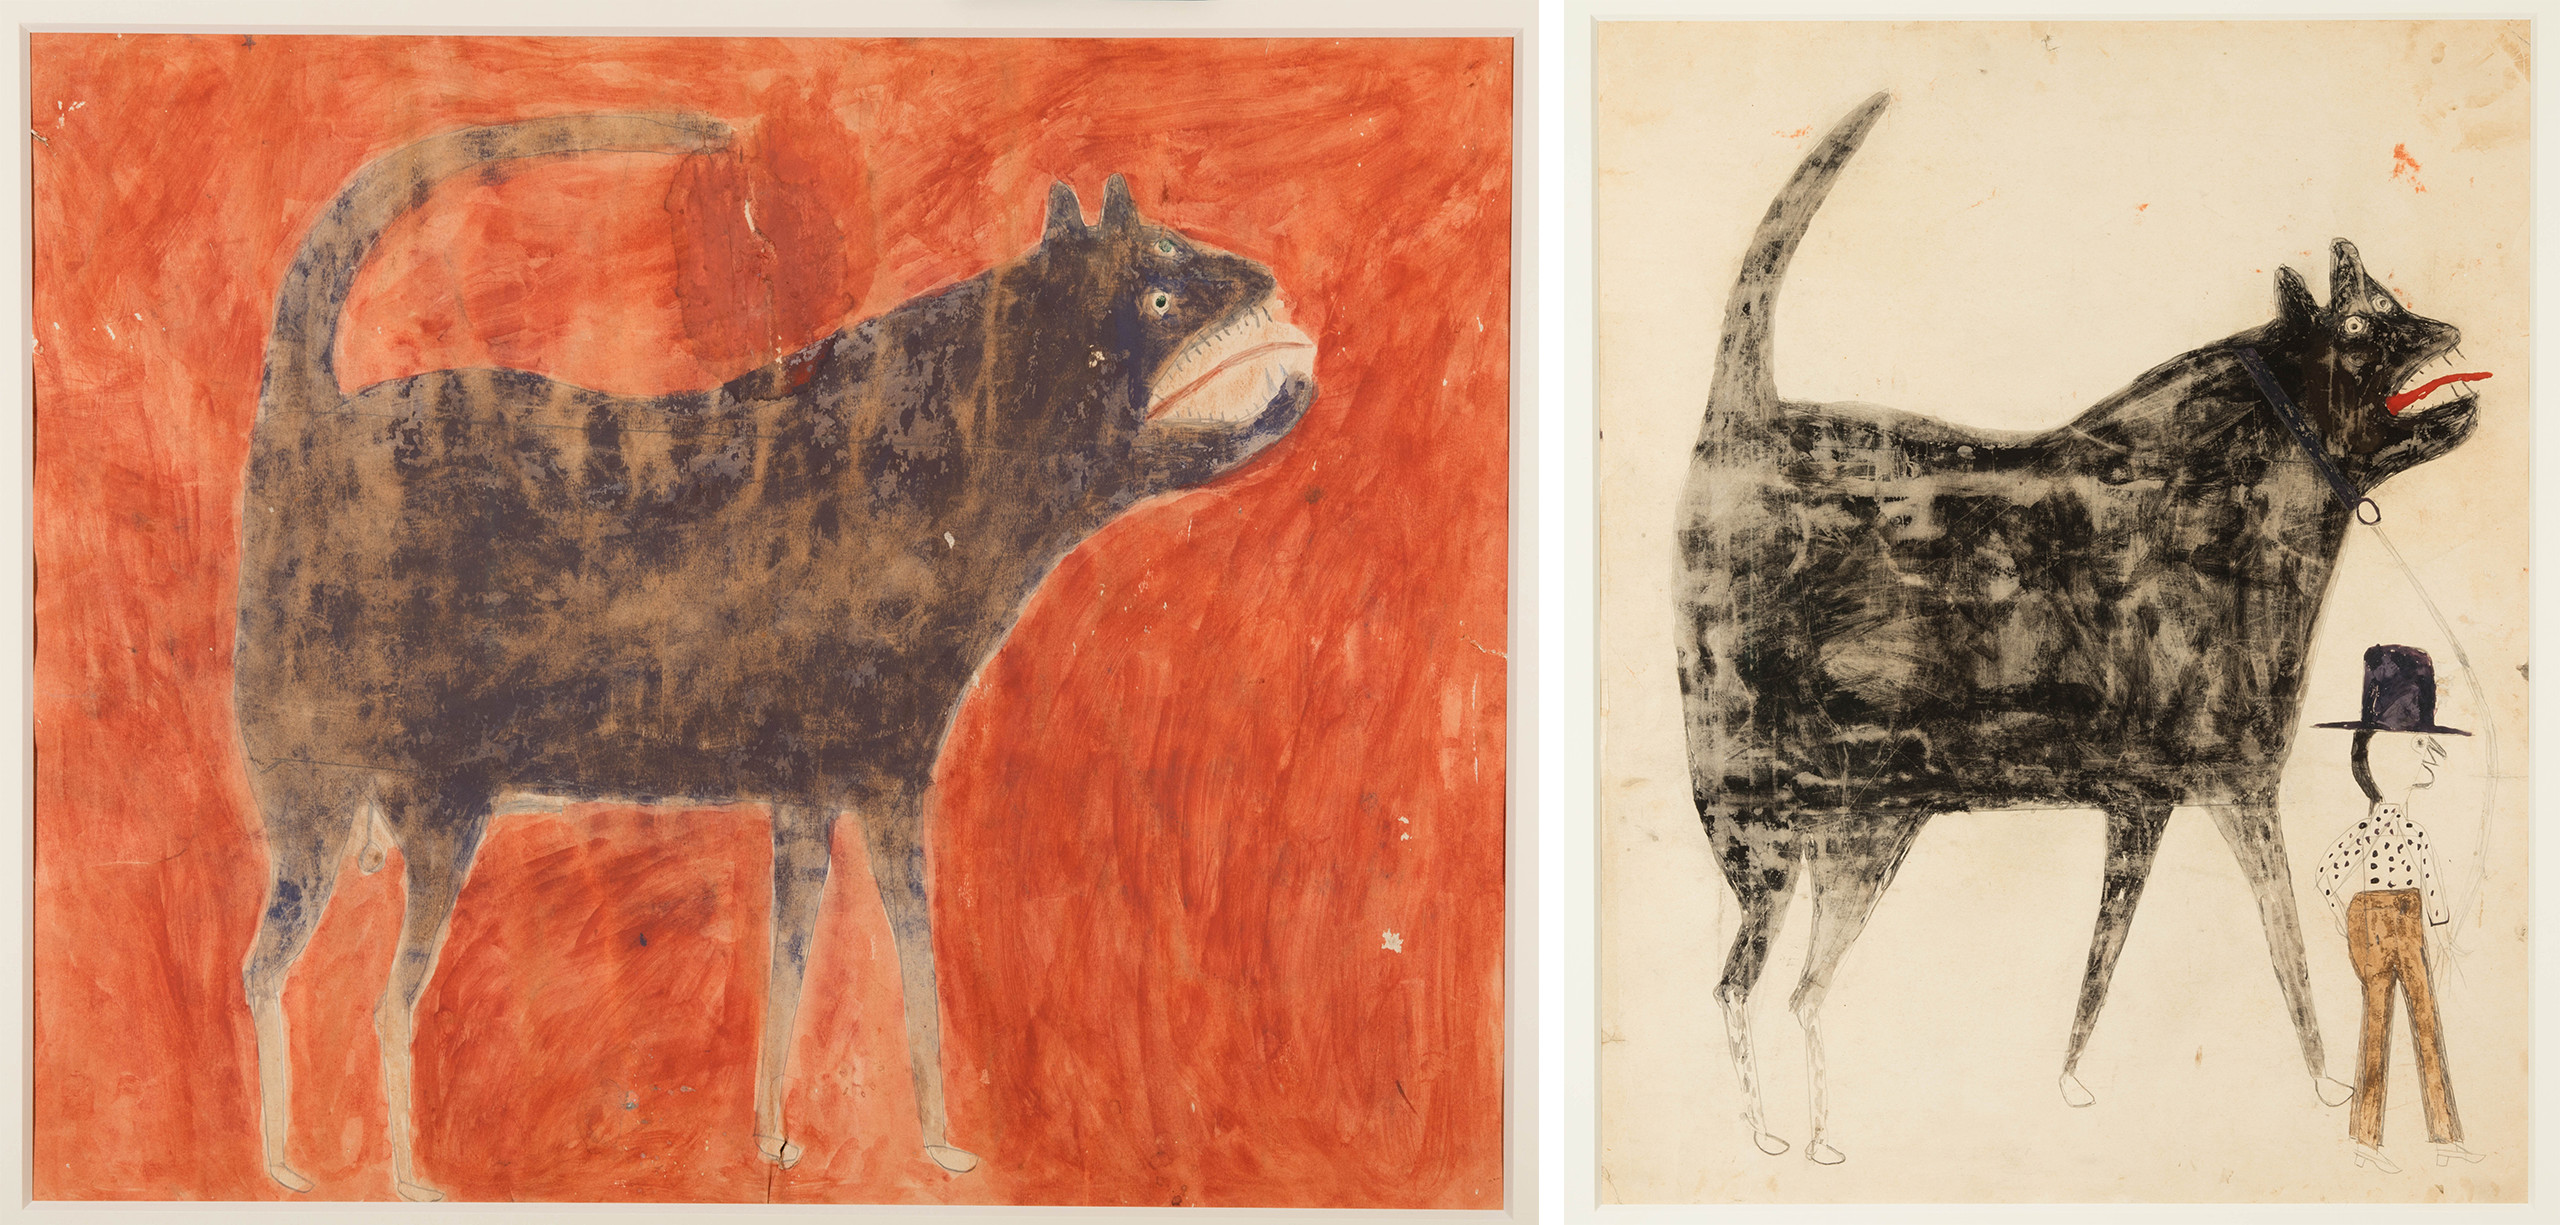 (Left) <em>Mean Dog (Verso: Man Leading Mule)</em>, by Bill Traylor, ca. 1939–1942, poster paint and pencil on cardboard. Collection of Jerry and Susan Lauren. Photo: Matt Flynn © Smithsonian Institution. (Right) <em>Man and Large Dog (Verso: Man and Woman)</em>, by Bill Traylor, ca. 1939–1942, poster paint and pencil on cardboard. Collection of Jerry and Susan Lauren. Photo: Matt Flynn © Smithsonian Institution